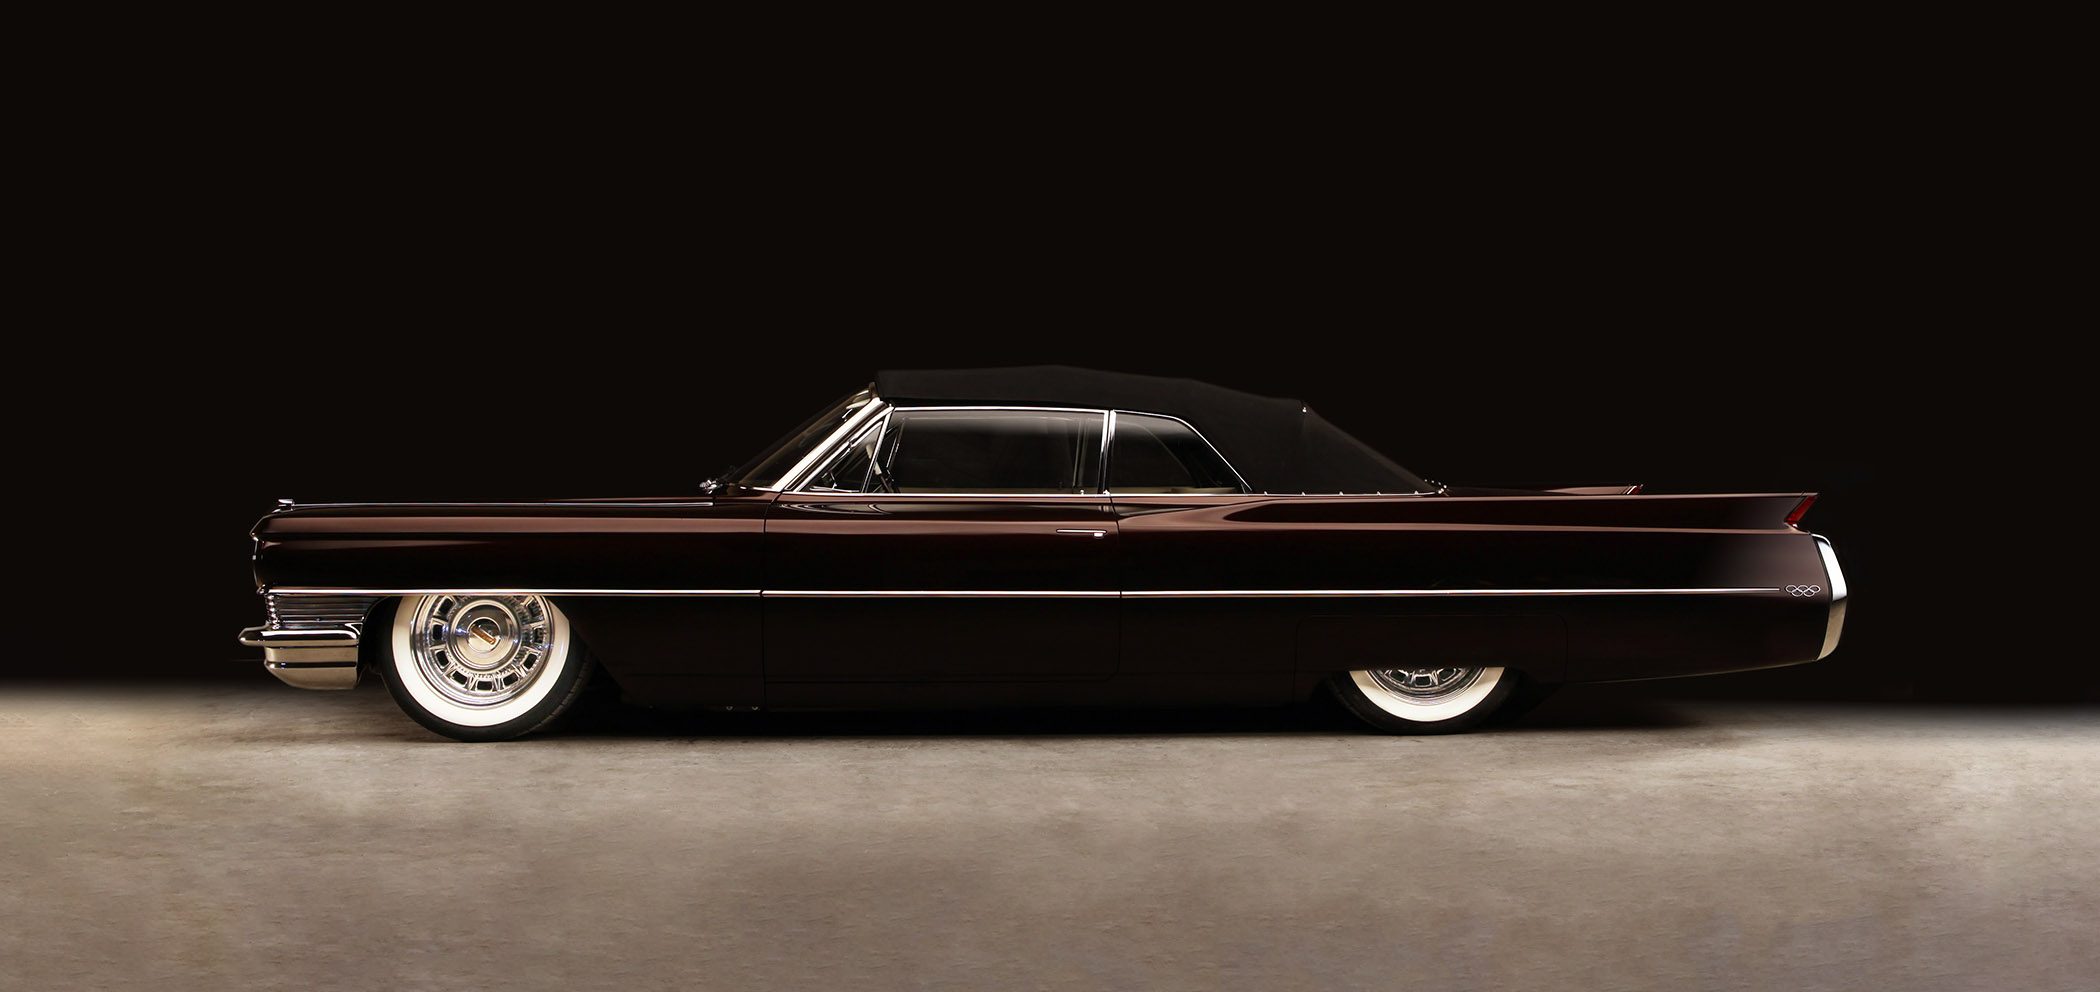 Black And White Wallpaper Designs 64 Cadillac Coupe Deville Kindig It